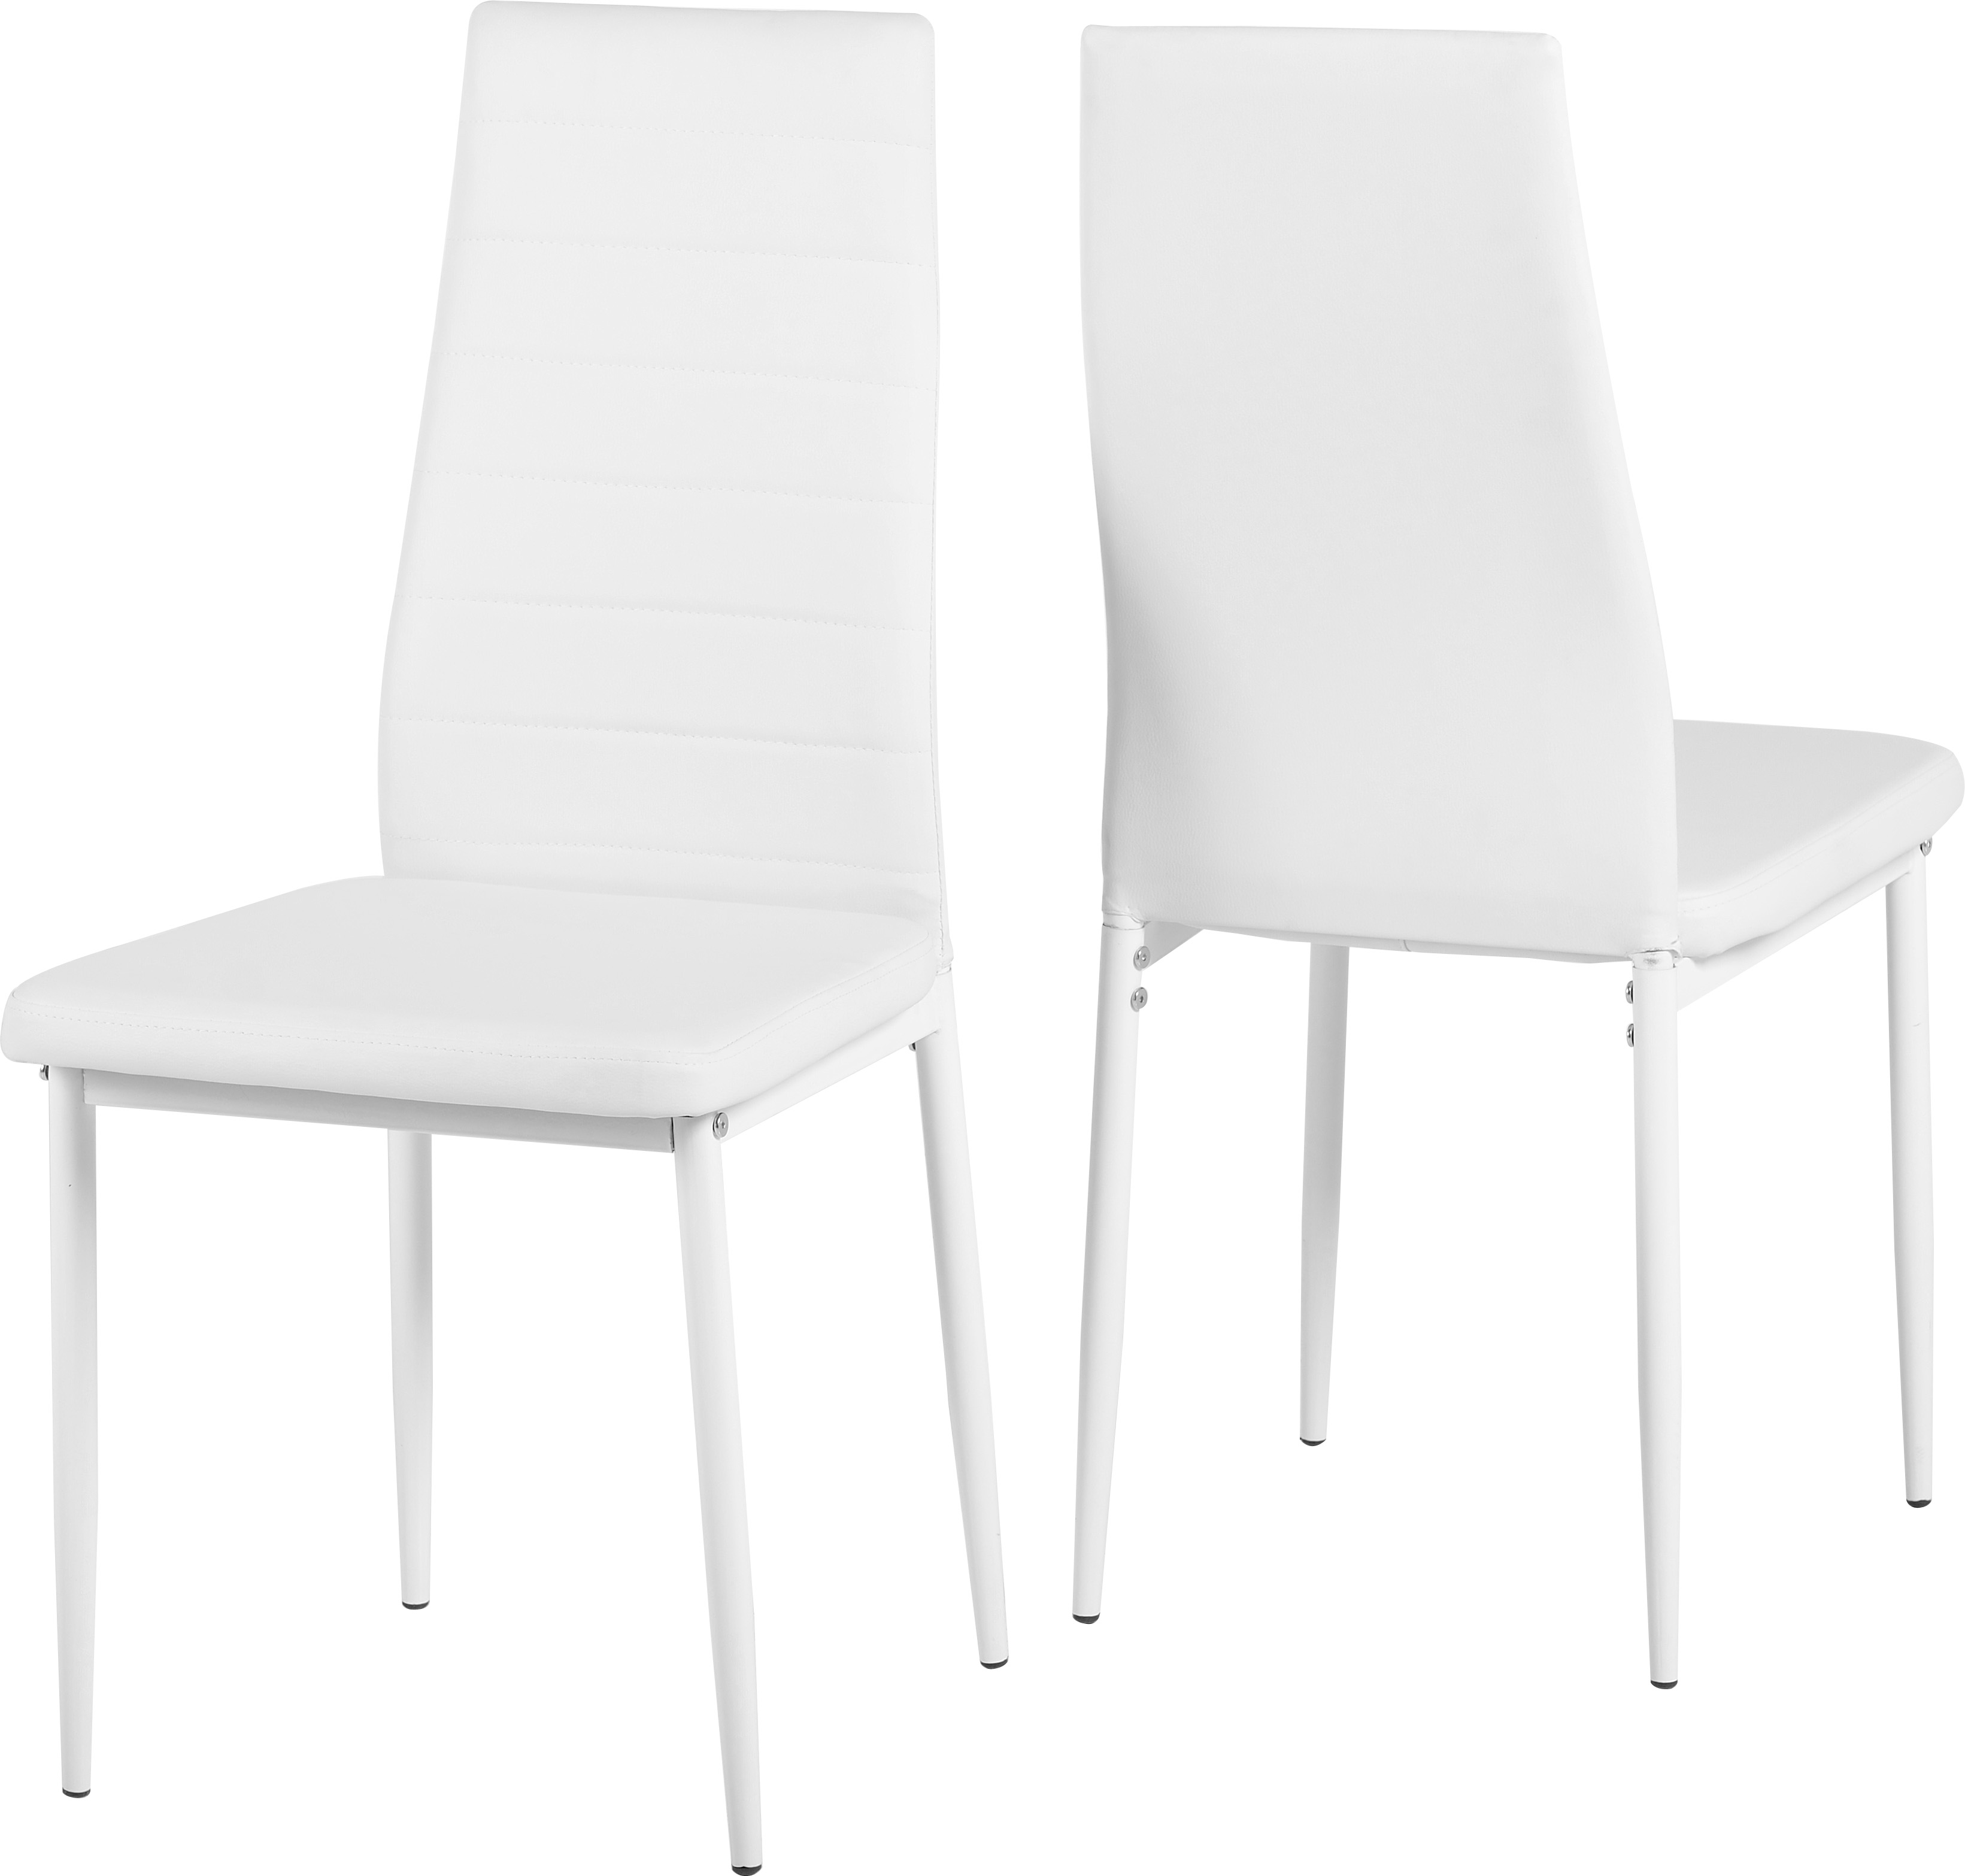 Image of Abbey Chair in White set of 2